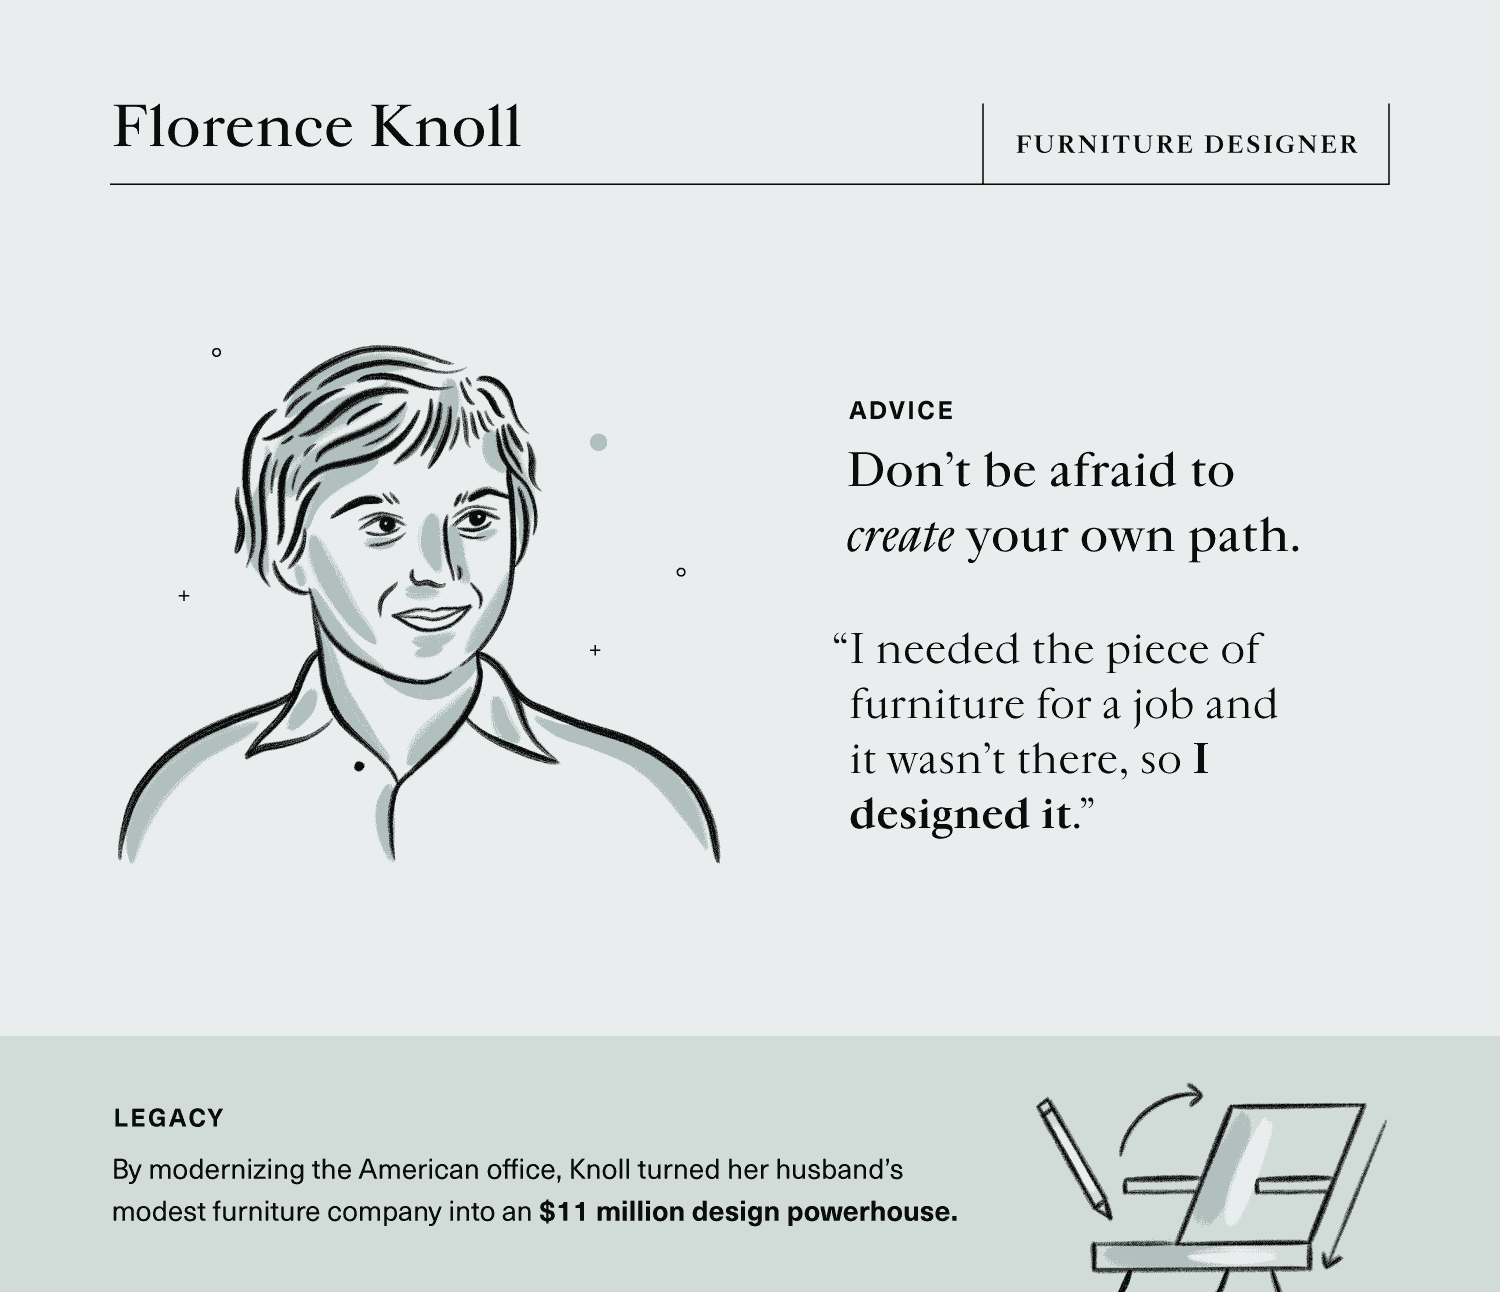 empowering advice on confidence from female furniture designer, Florence Knoll.